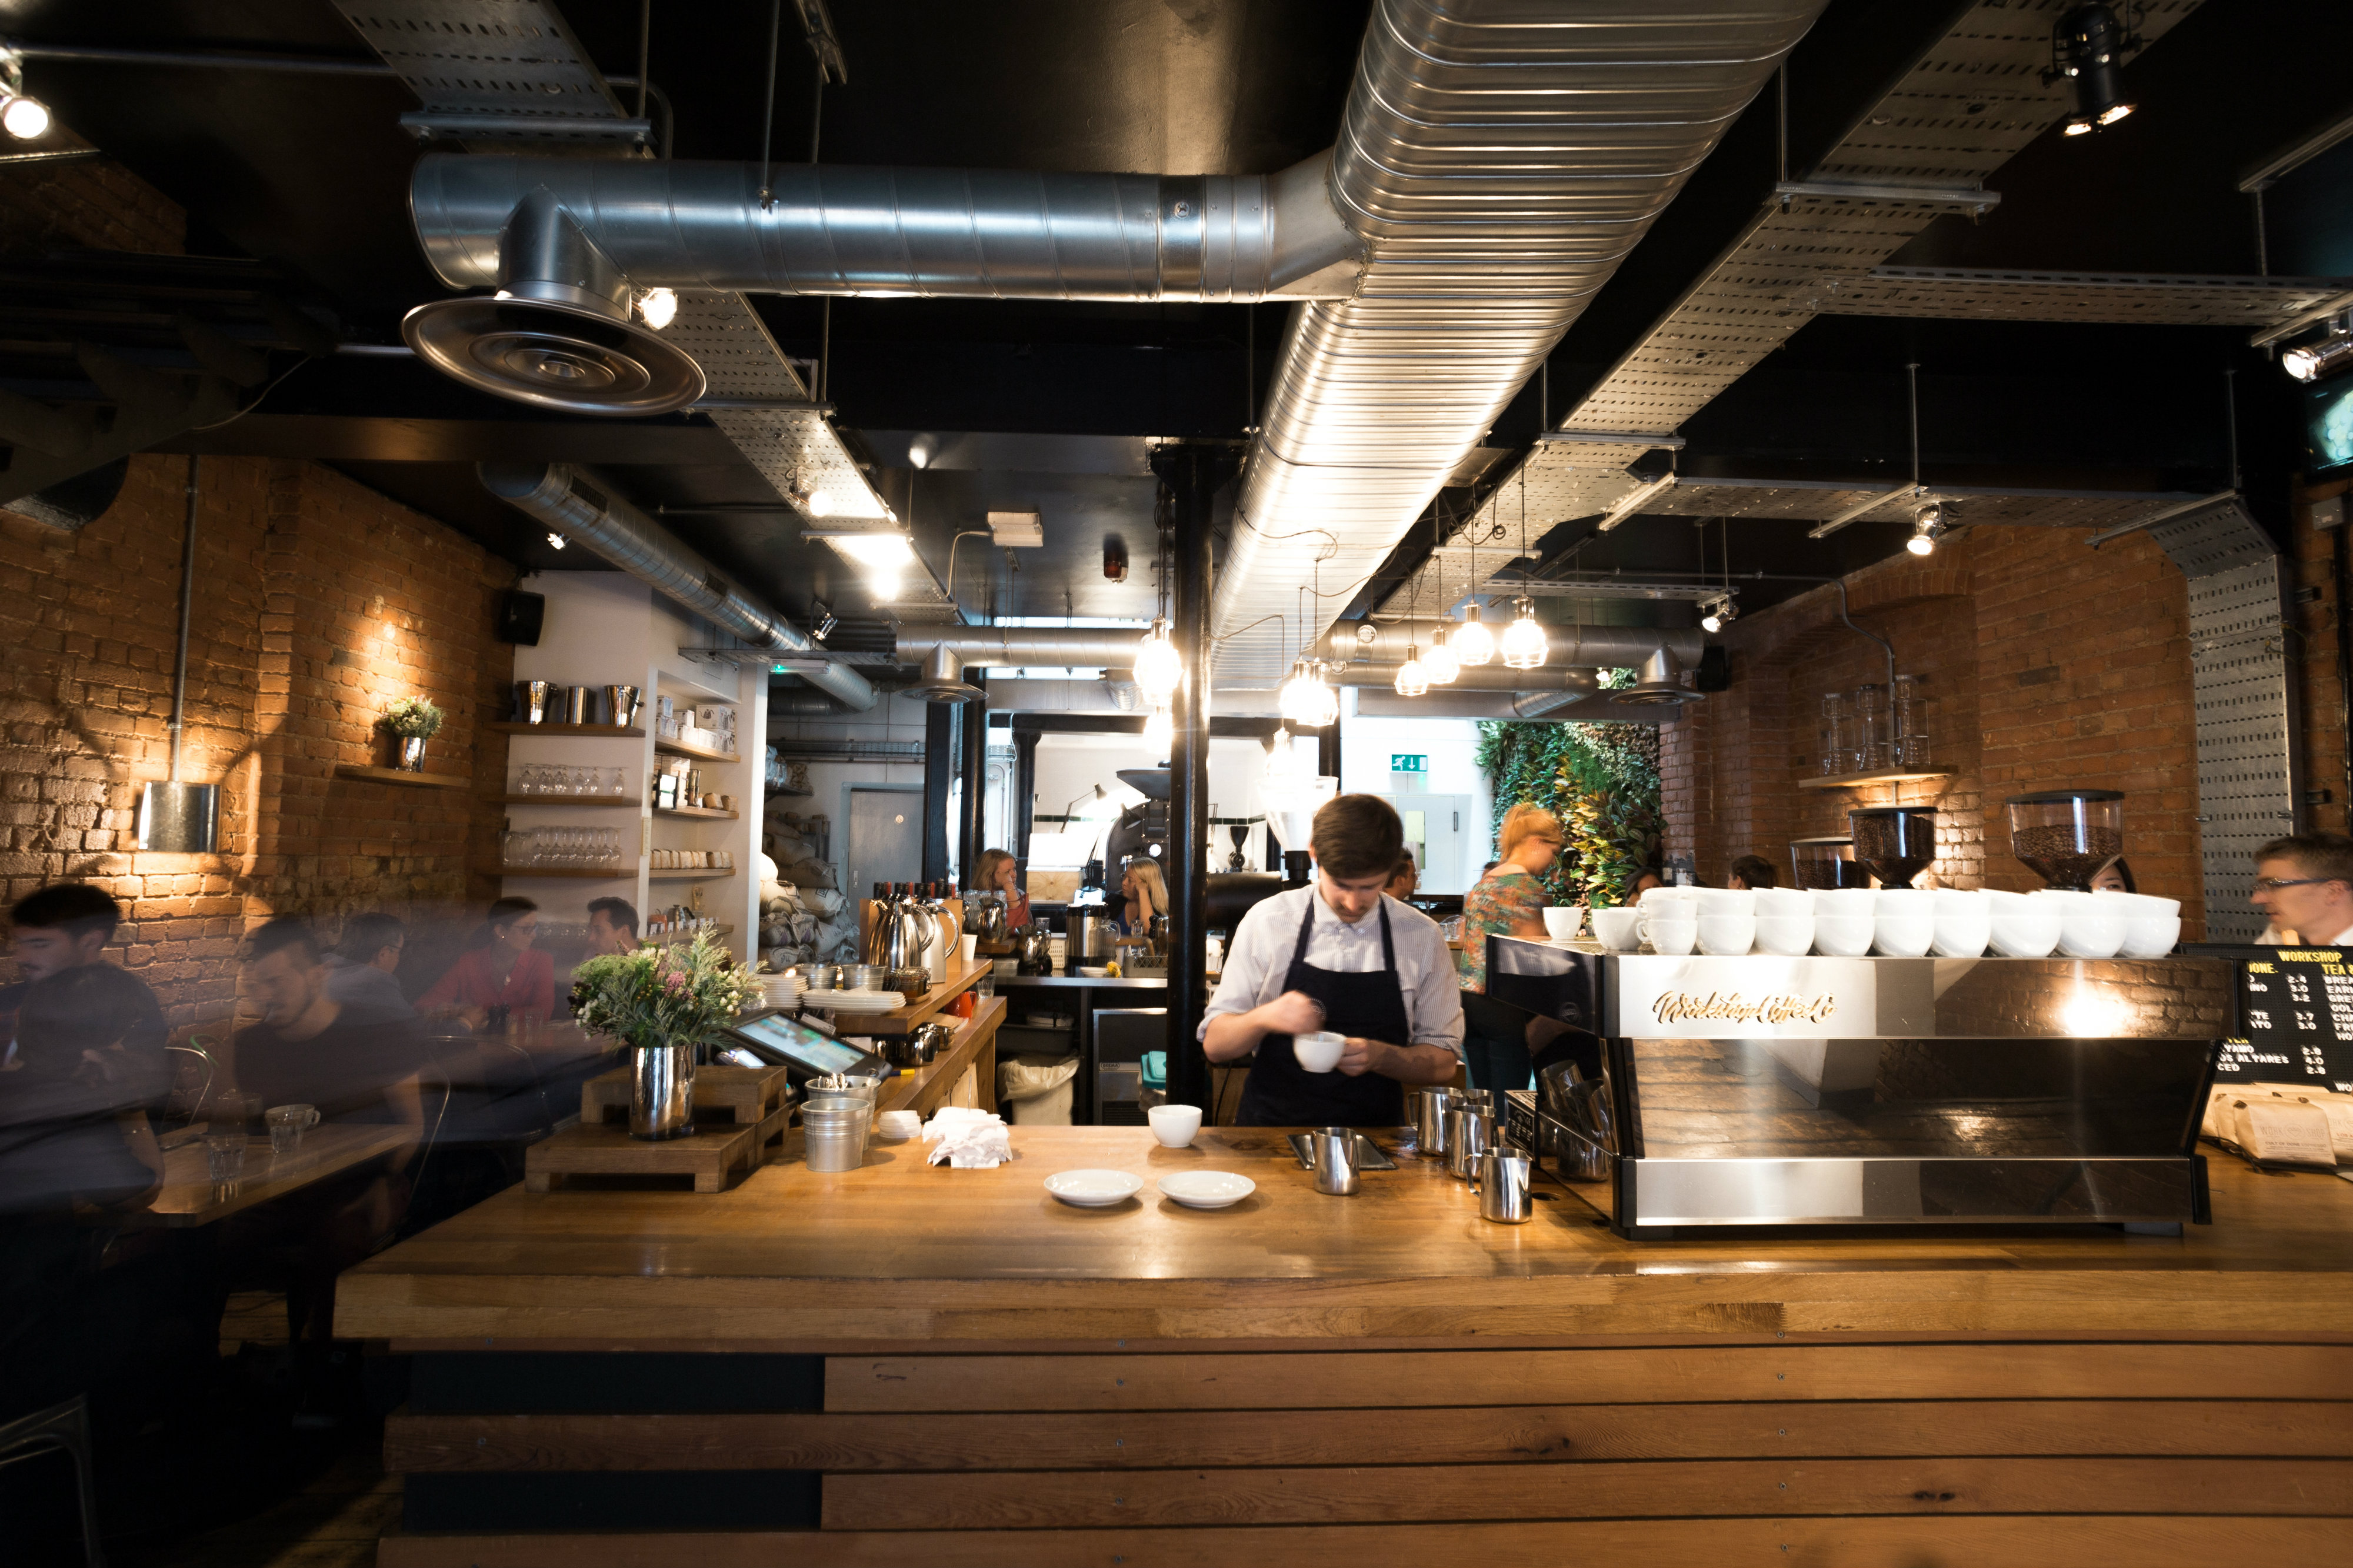 The Best Independent Coffee Spots In London